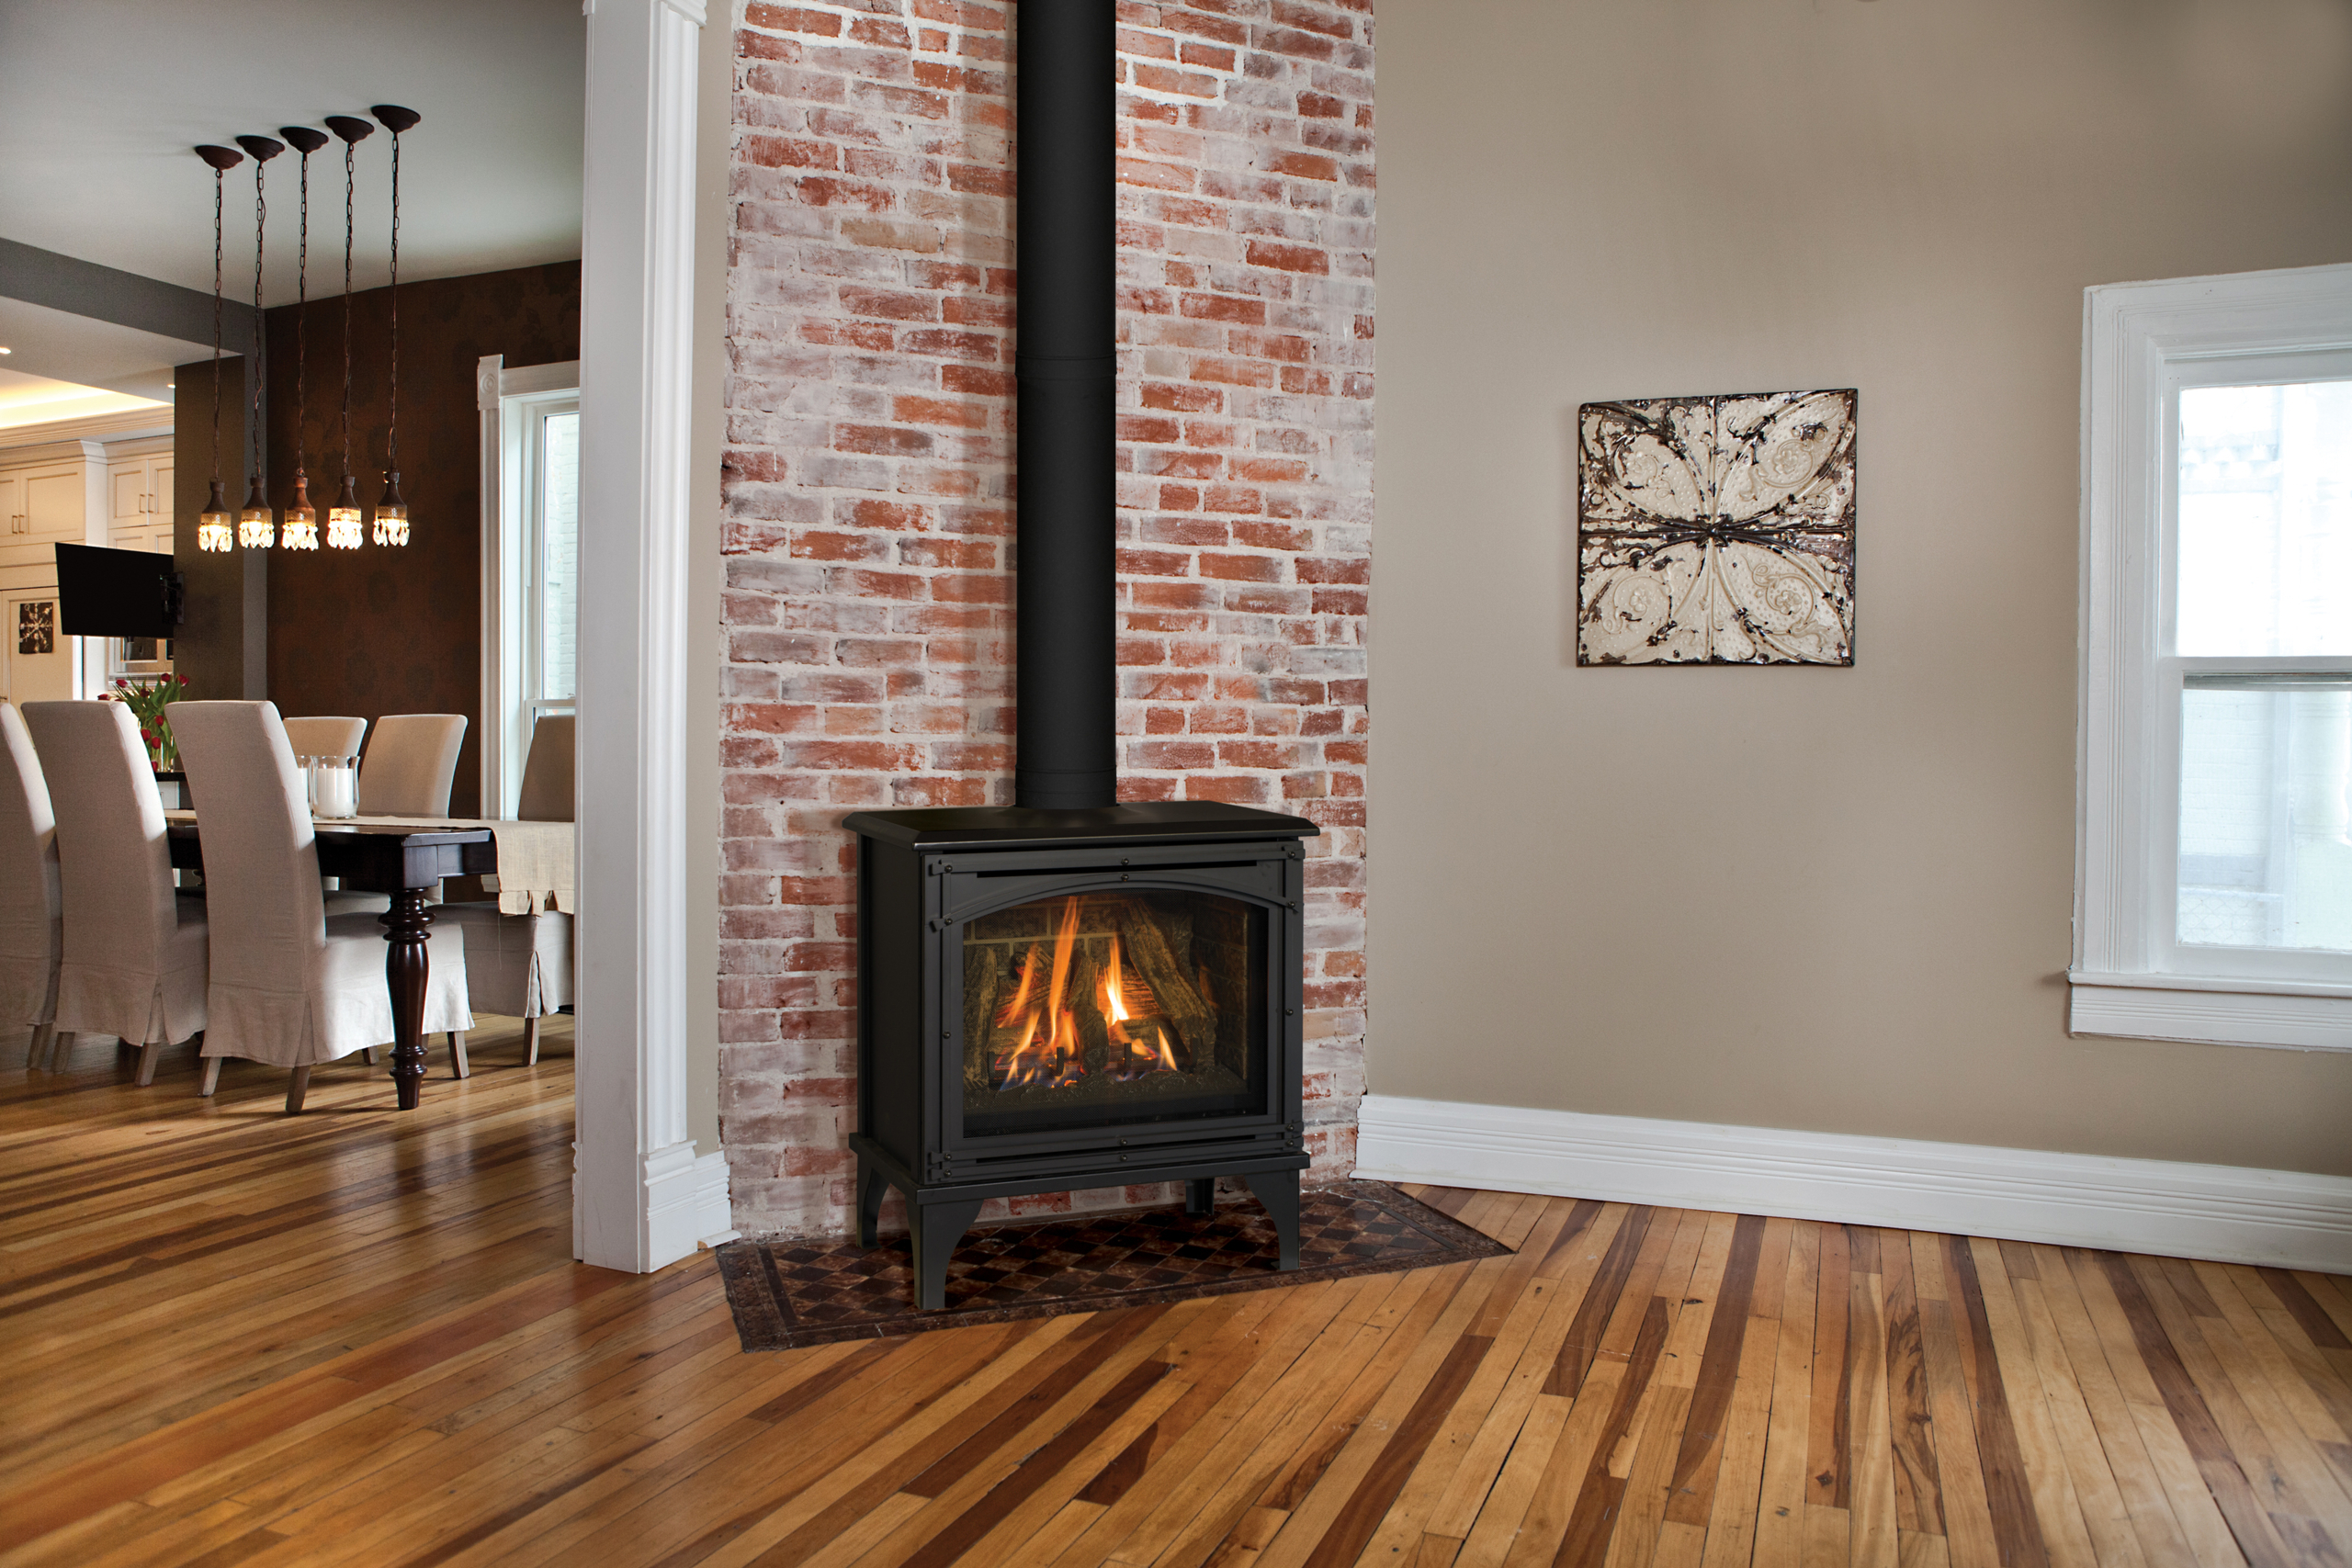 50+ Free Standing Ventless Gas Fireplace - Visual Hunt